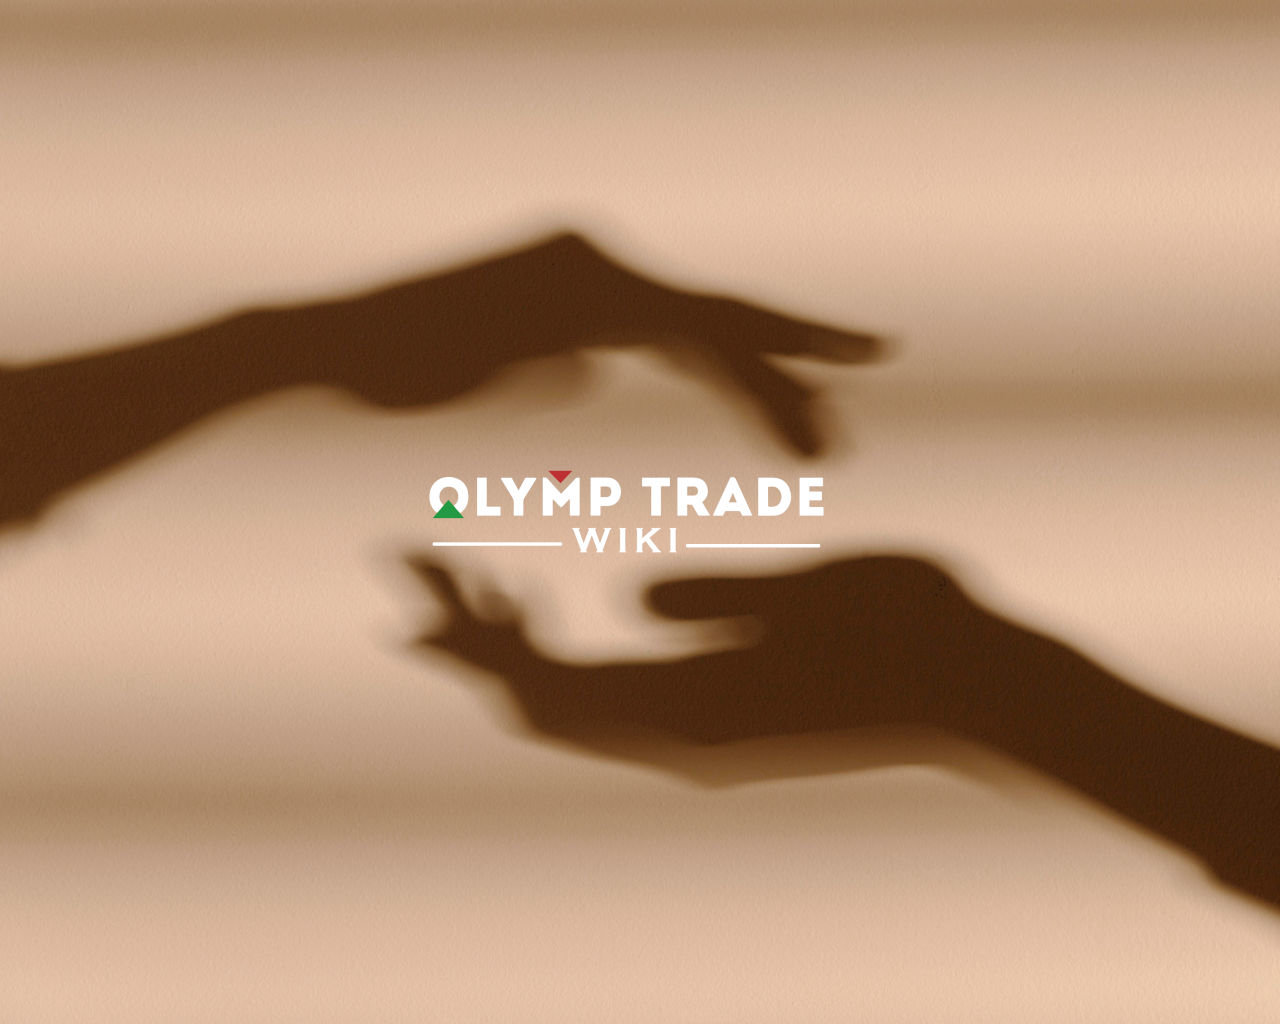 candle shadows on Olymp Trade